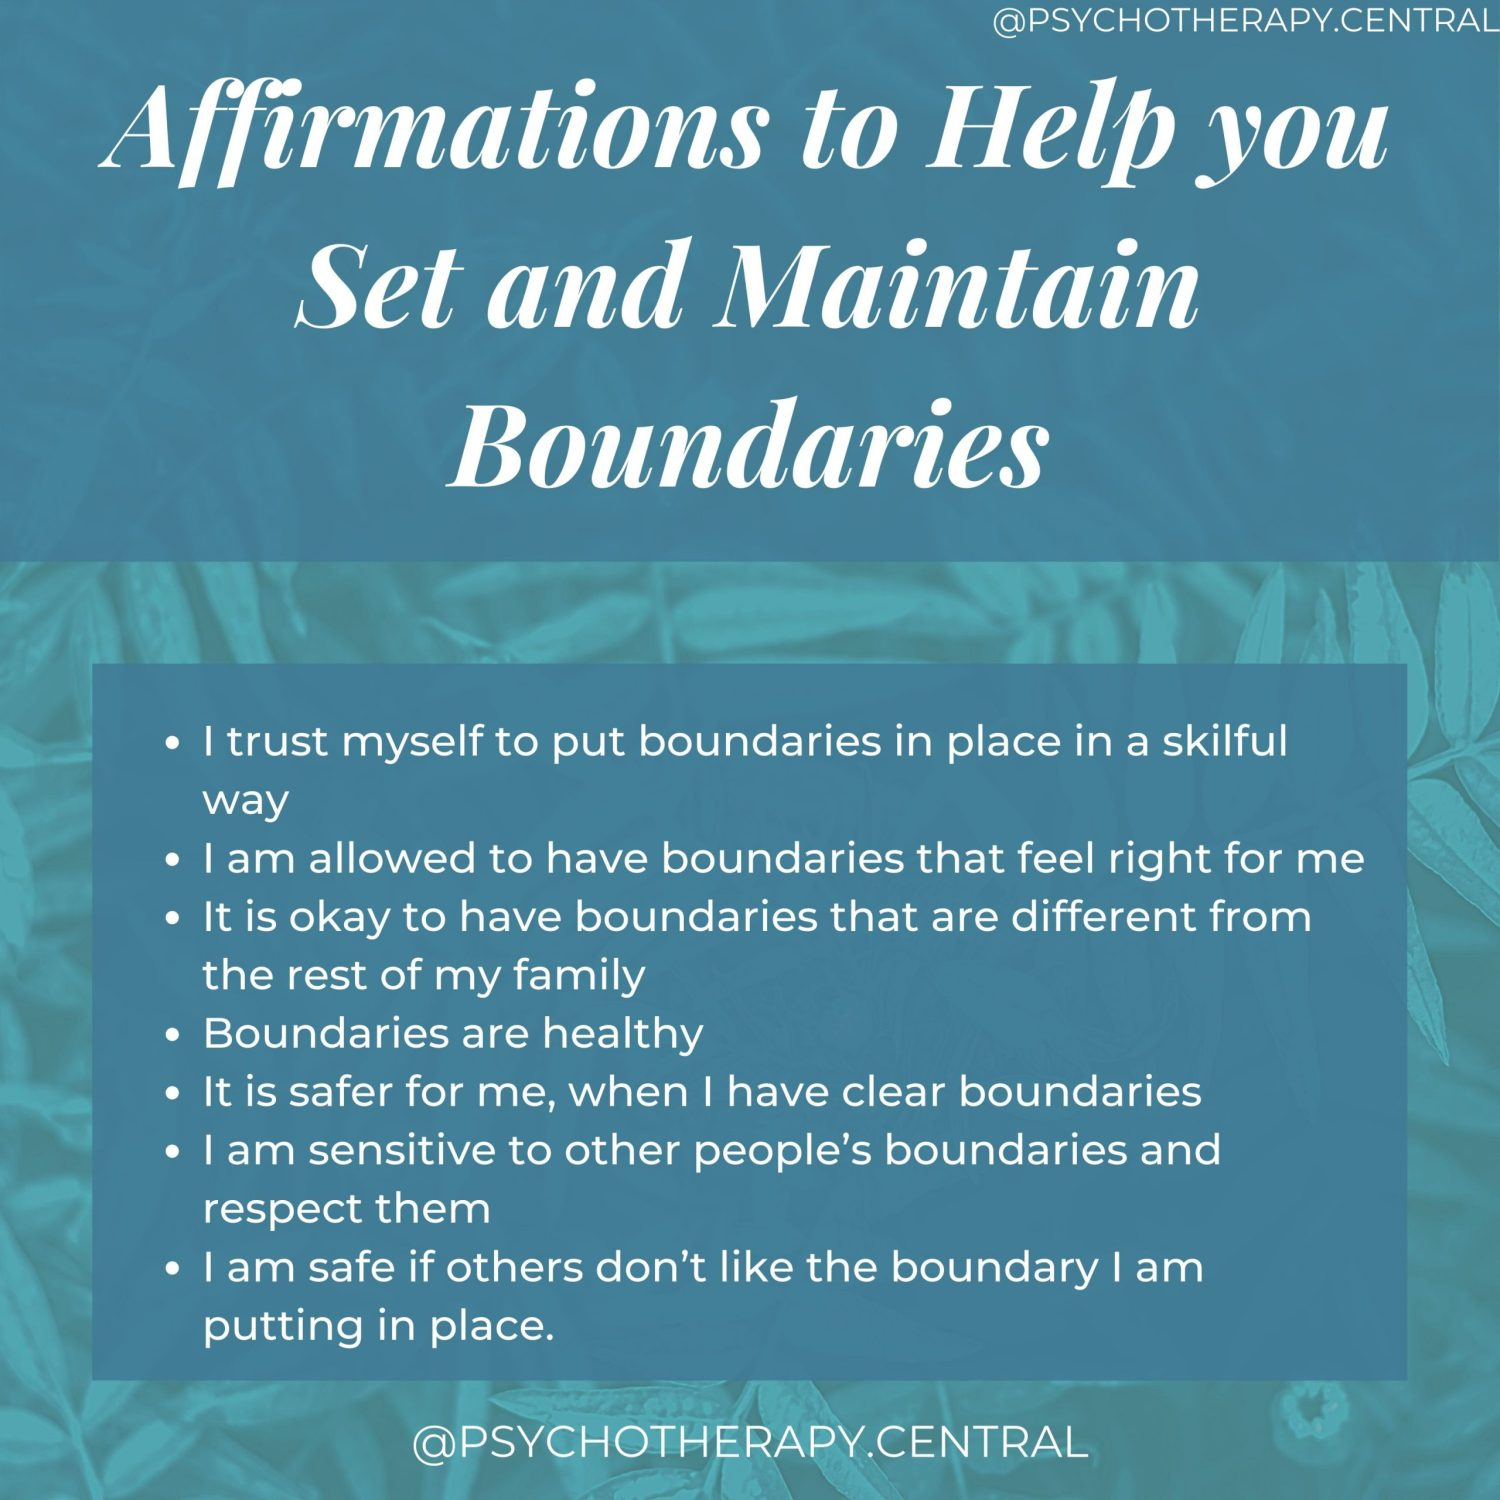 Affirmations to Help you Set and Maintain Boundaries